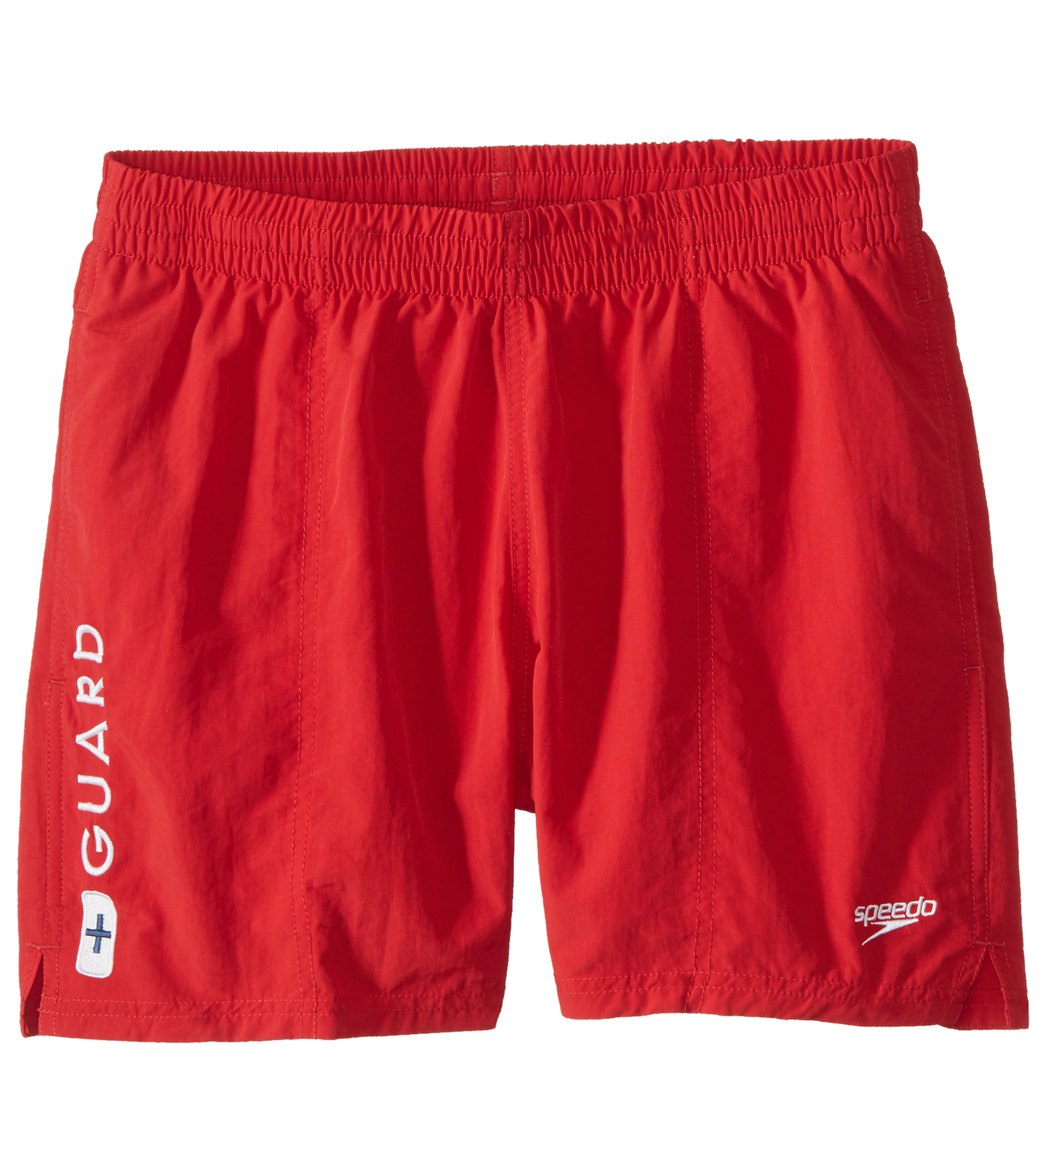 72b753148688 Speedo Men s Lifeguard Guard 16